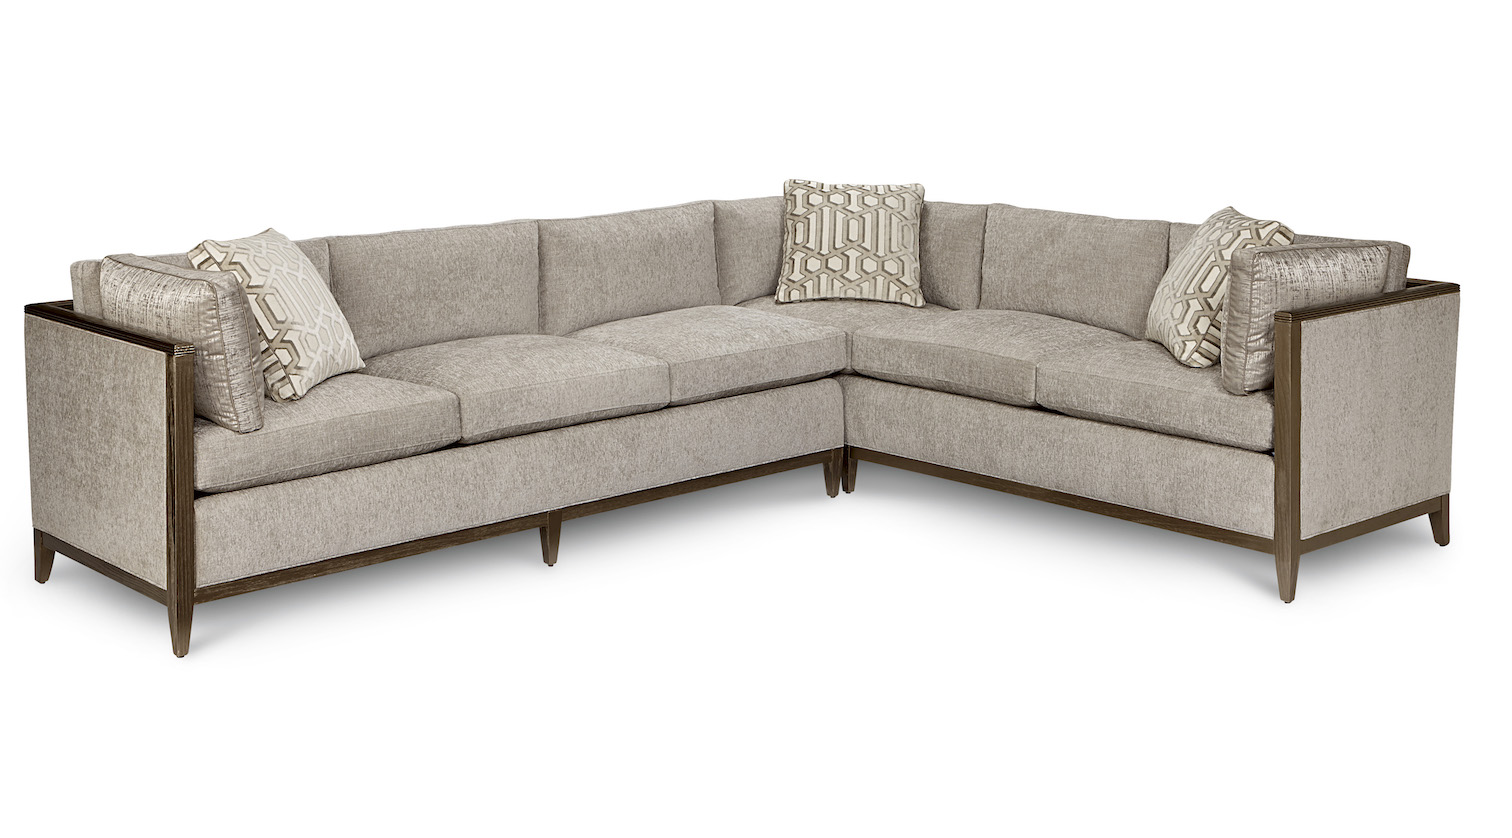 Wondrous Cityscapes Astor Crystal Sectional Sofas And Sectionals Machost Co Dining Chair Design Ideas Machostcouk